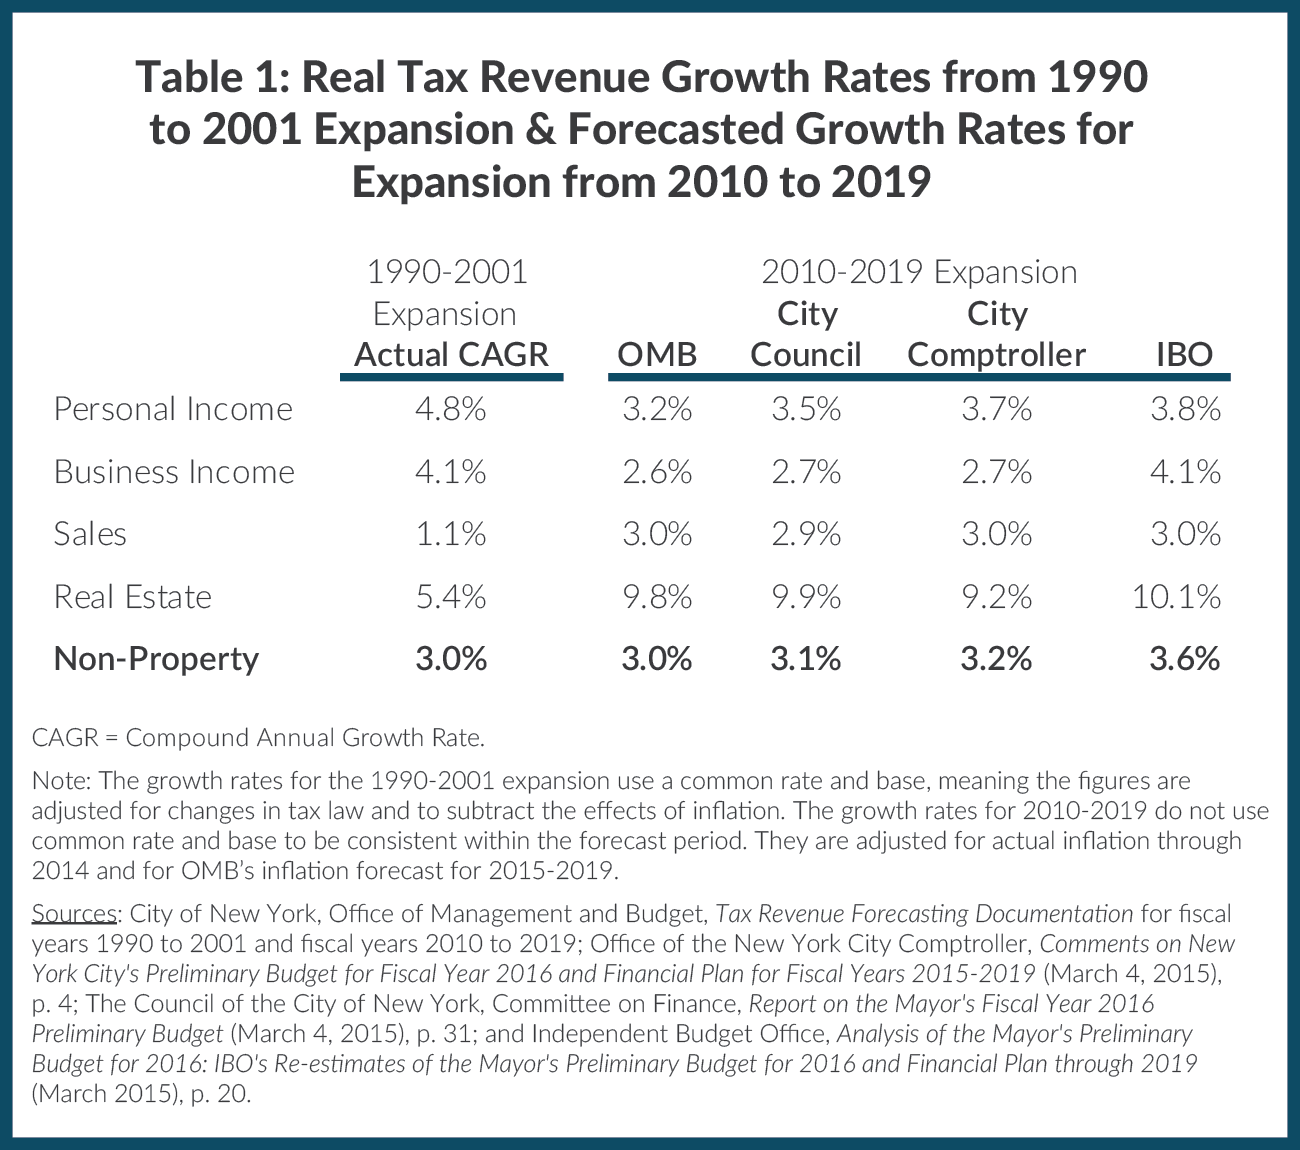 Table 1: Real Tax Revenue Growth Rates from 1990 to 2001 Expansion & Forecasted Growth Rates for Expansion from 2010 to 2019